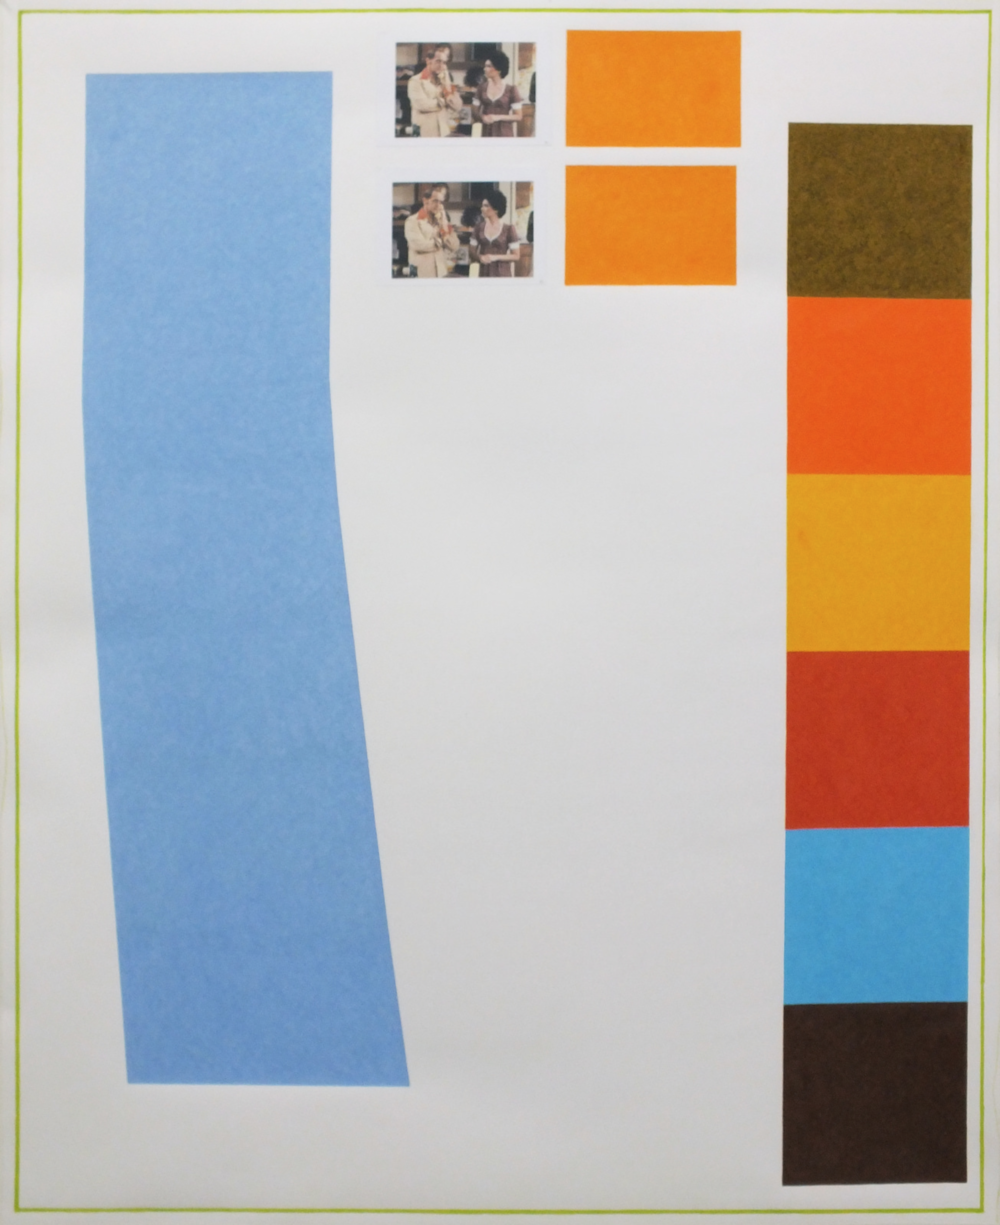 David X. Levine   Bob Newhart  2014 colored pencil, collage, graphite on paper 38 x 48 in